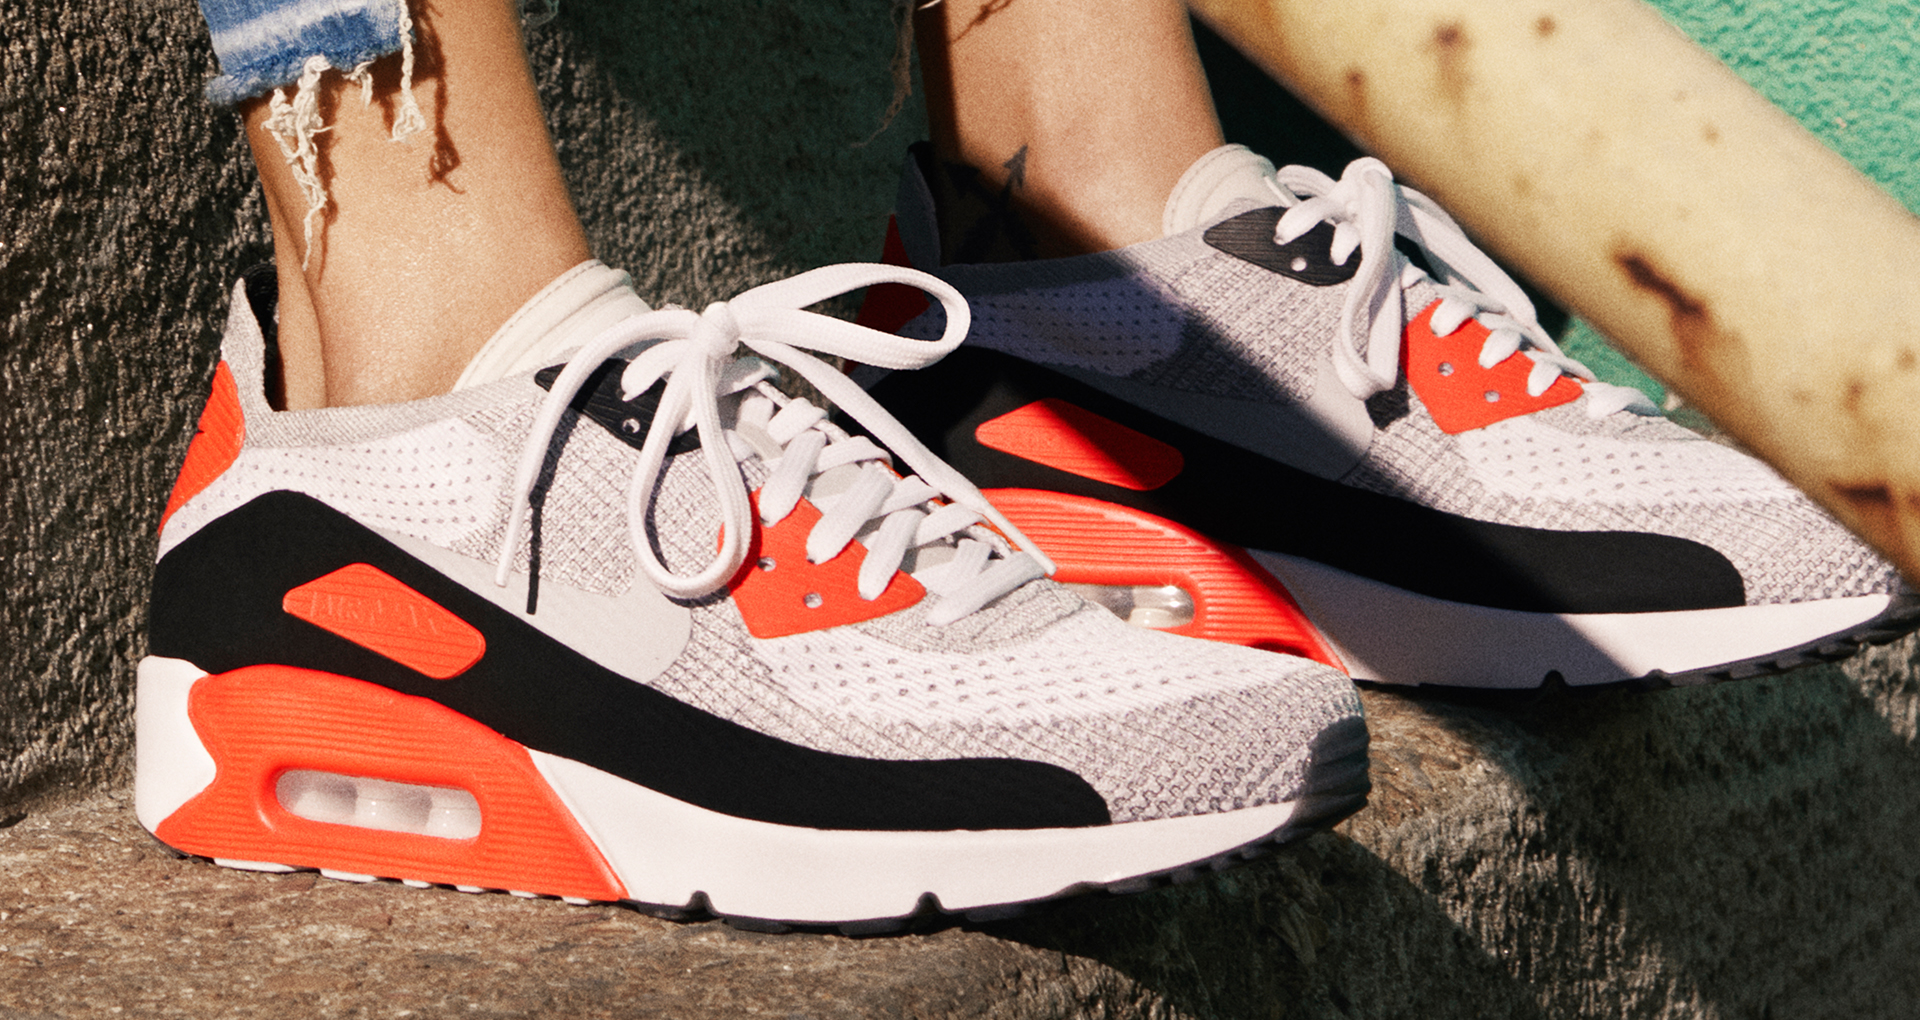 wmns-nike-air-max-90-ultra-2-flyknit-infrared-1